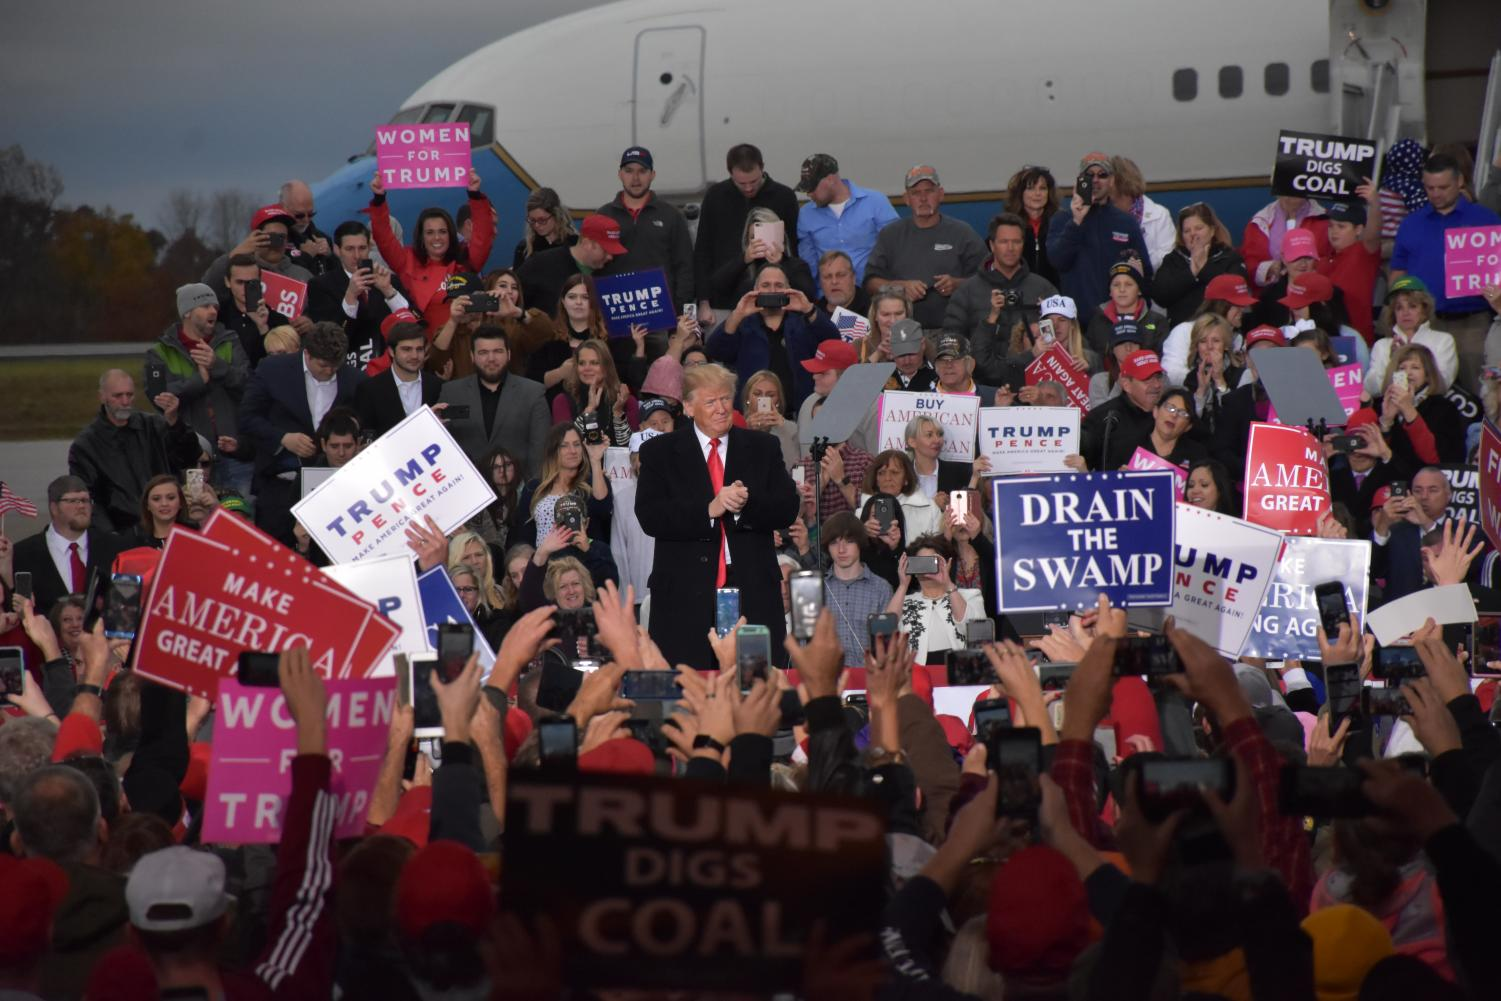 President Donald Trump addresses the crowd on Friday, Nov. 2, at the Huntington Tri-State Airport.